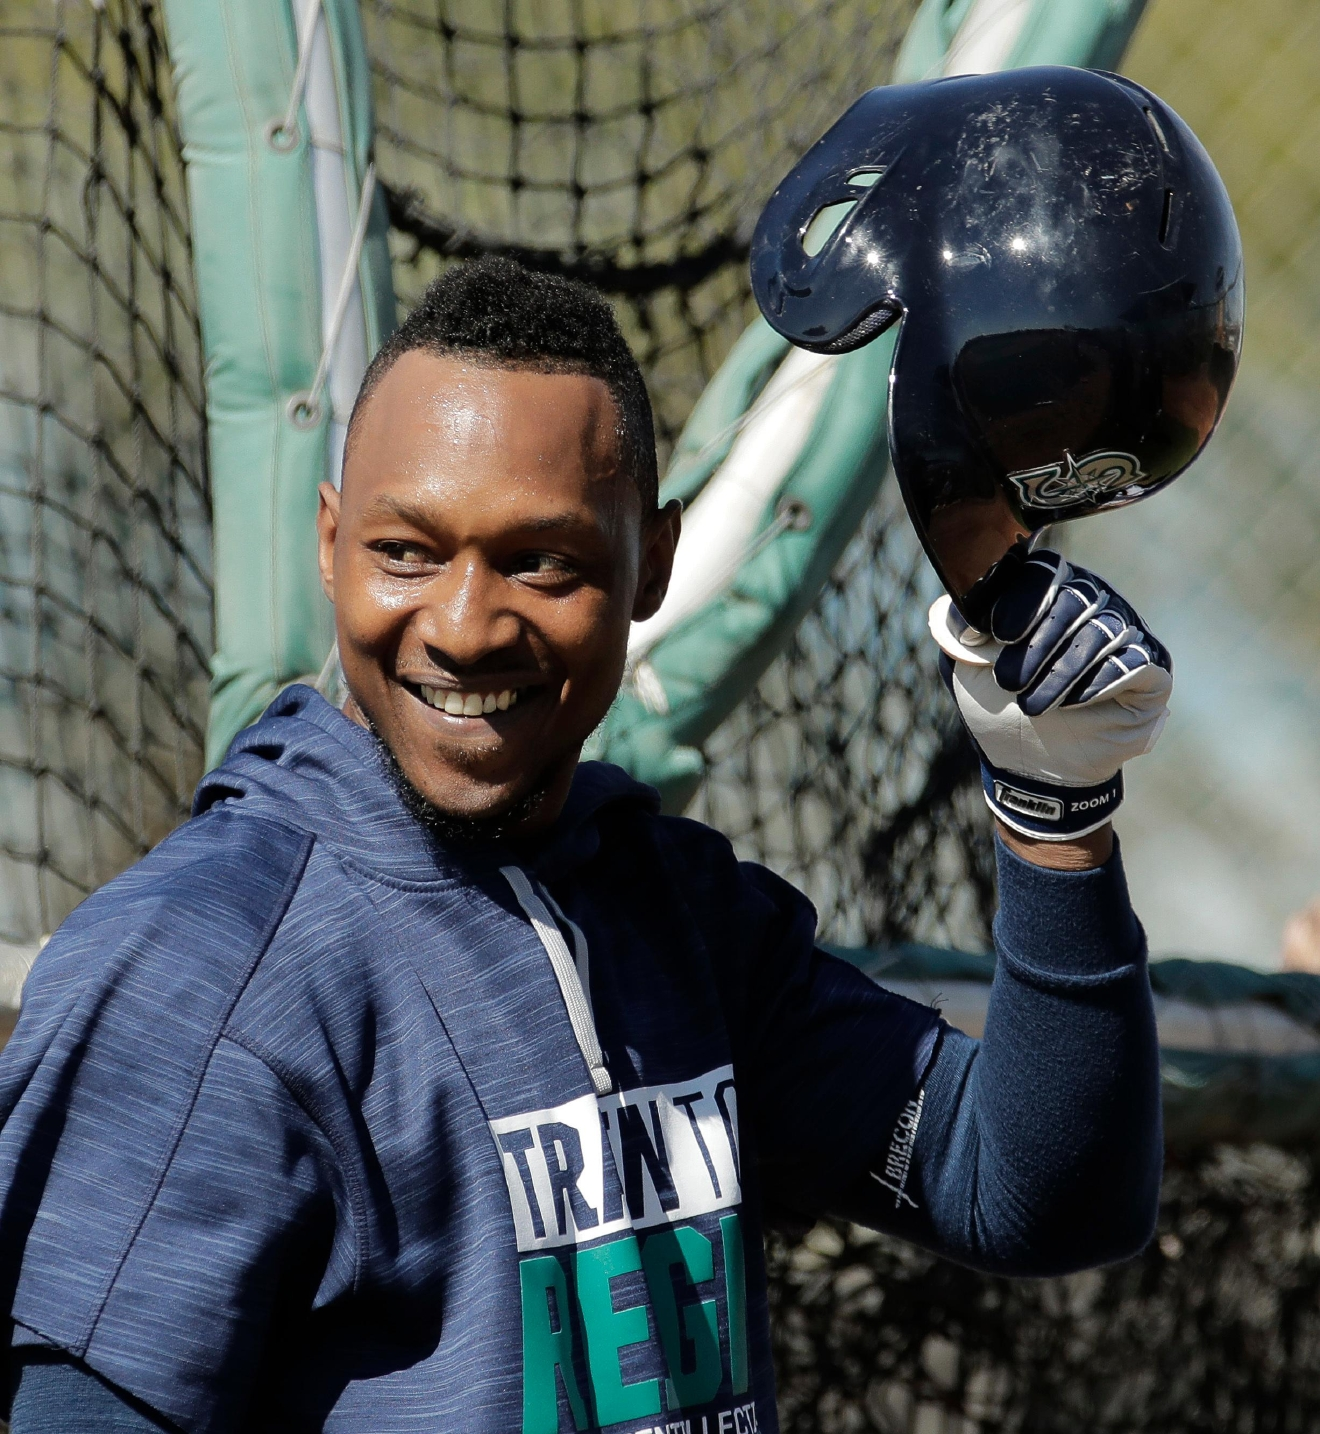 Seattle Mariners' Jarrod Dyson watches batting practice during baseball spring training Tuesday, Feb. 21, 2017, in Peoria, Ariz. (AP Photo/Charlie Riedel)